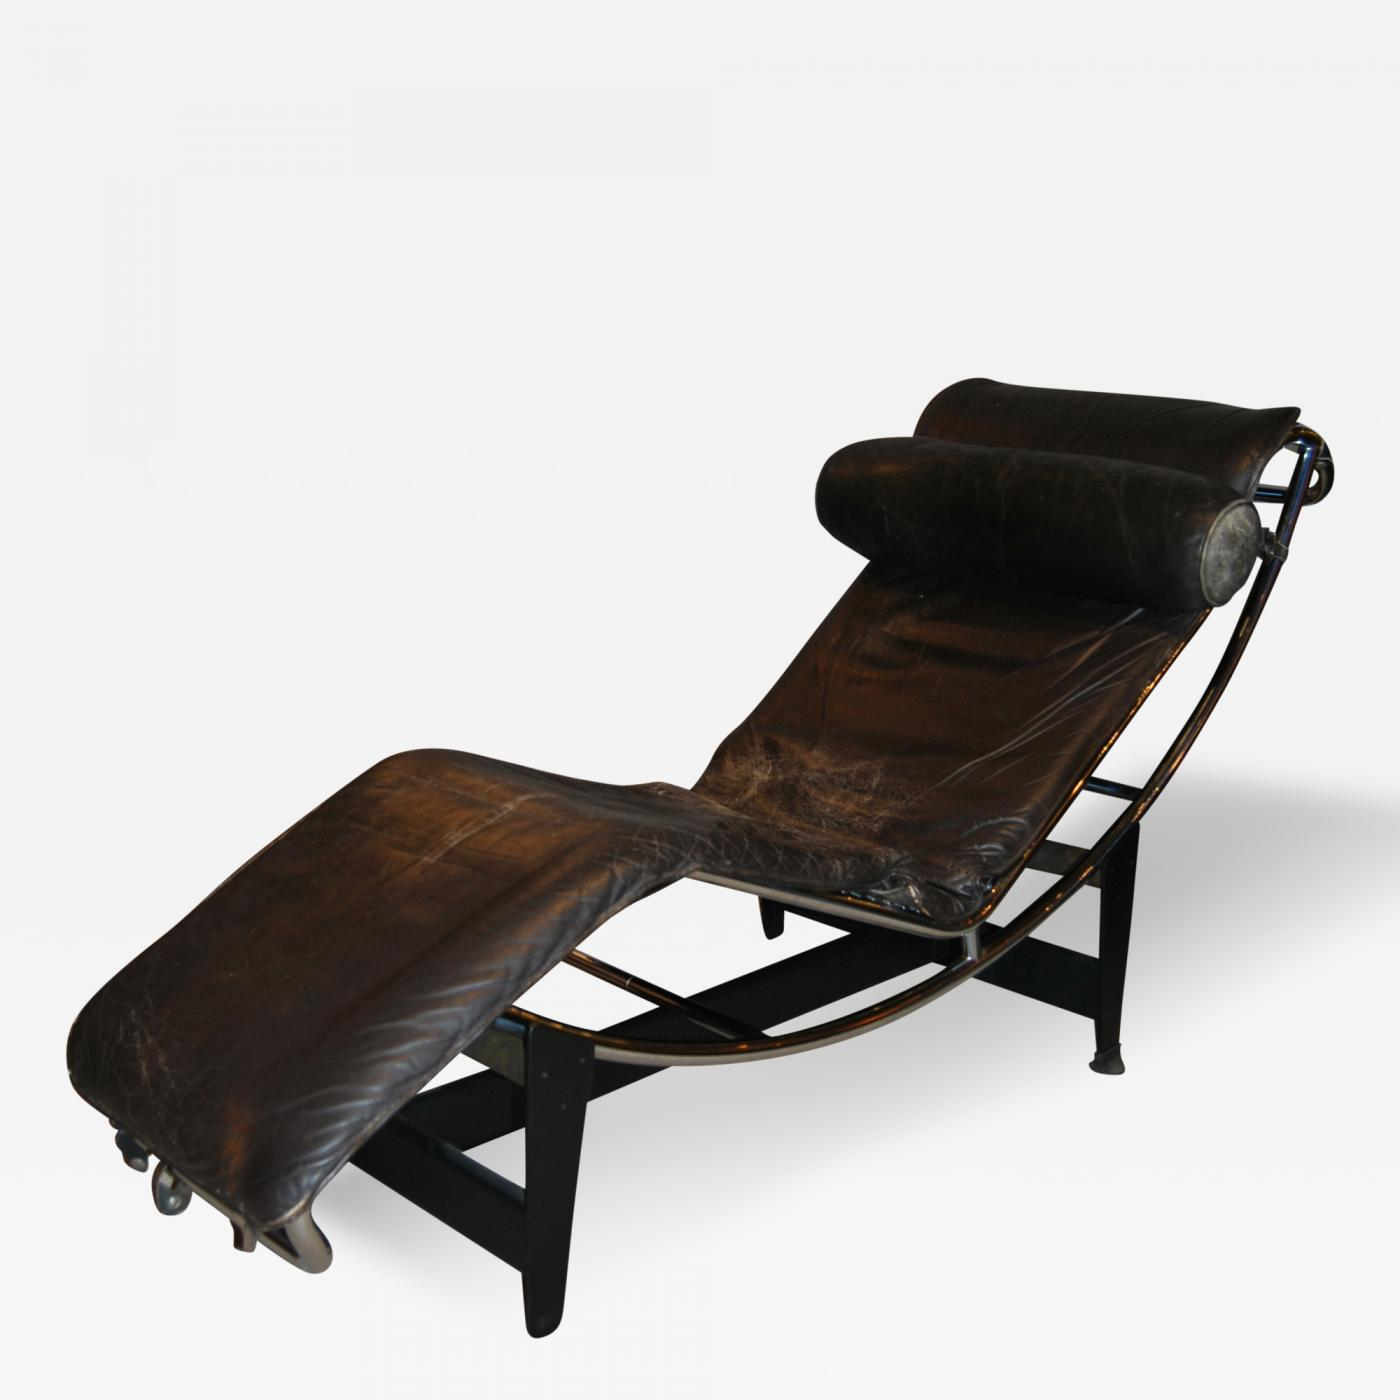 Pierre jeanneret early le corbusier jeanneret for Chaise le corbusier lc4